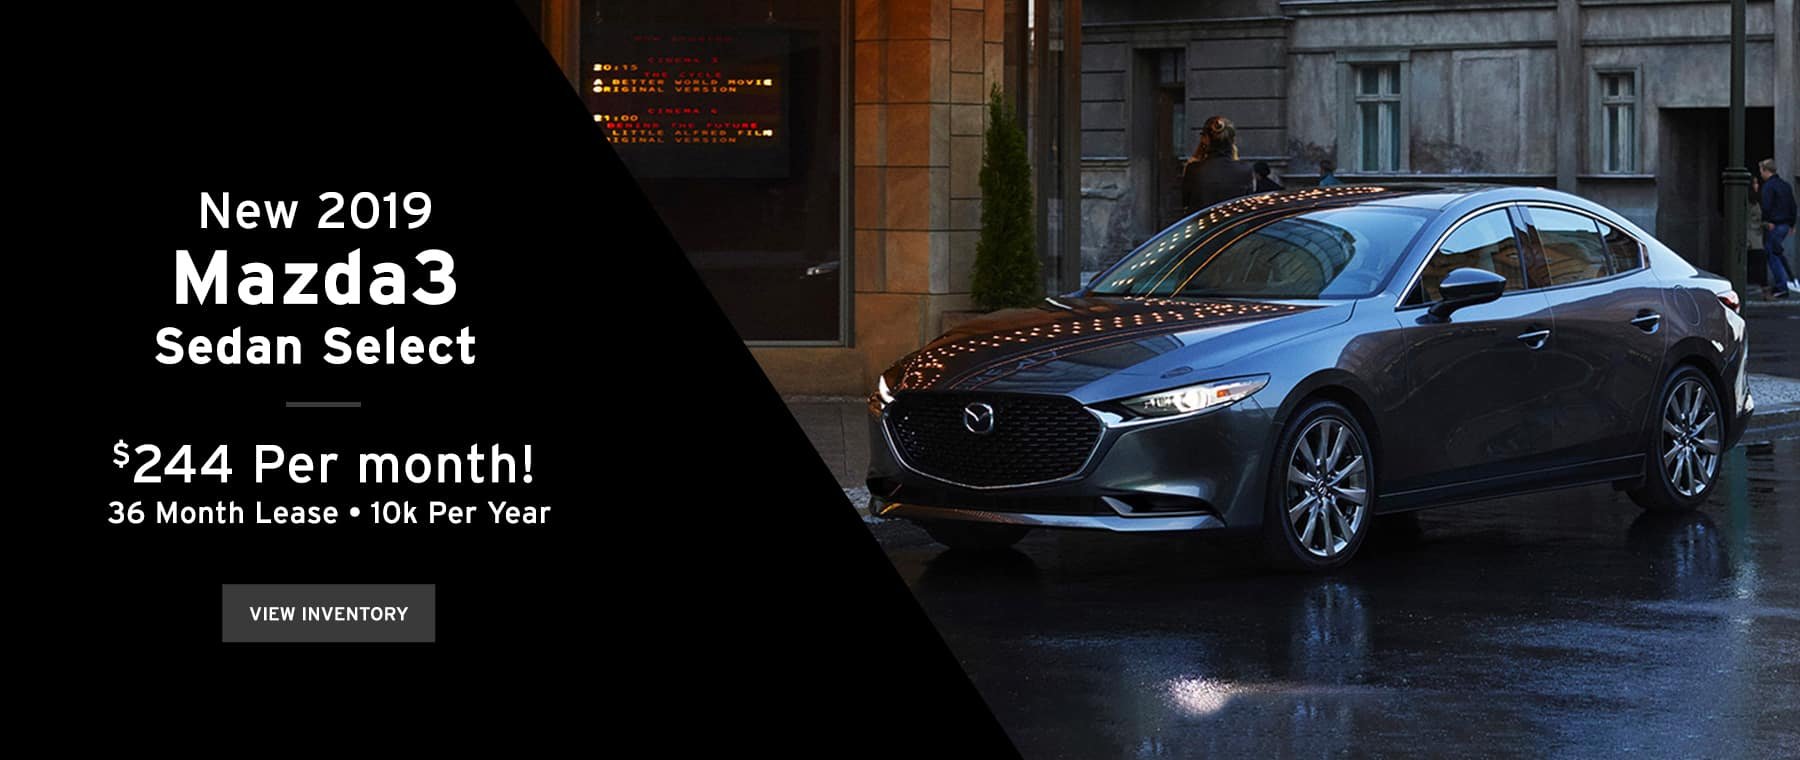 New Mazda3 Offers At Cooley Mazda